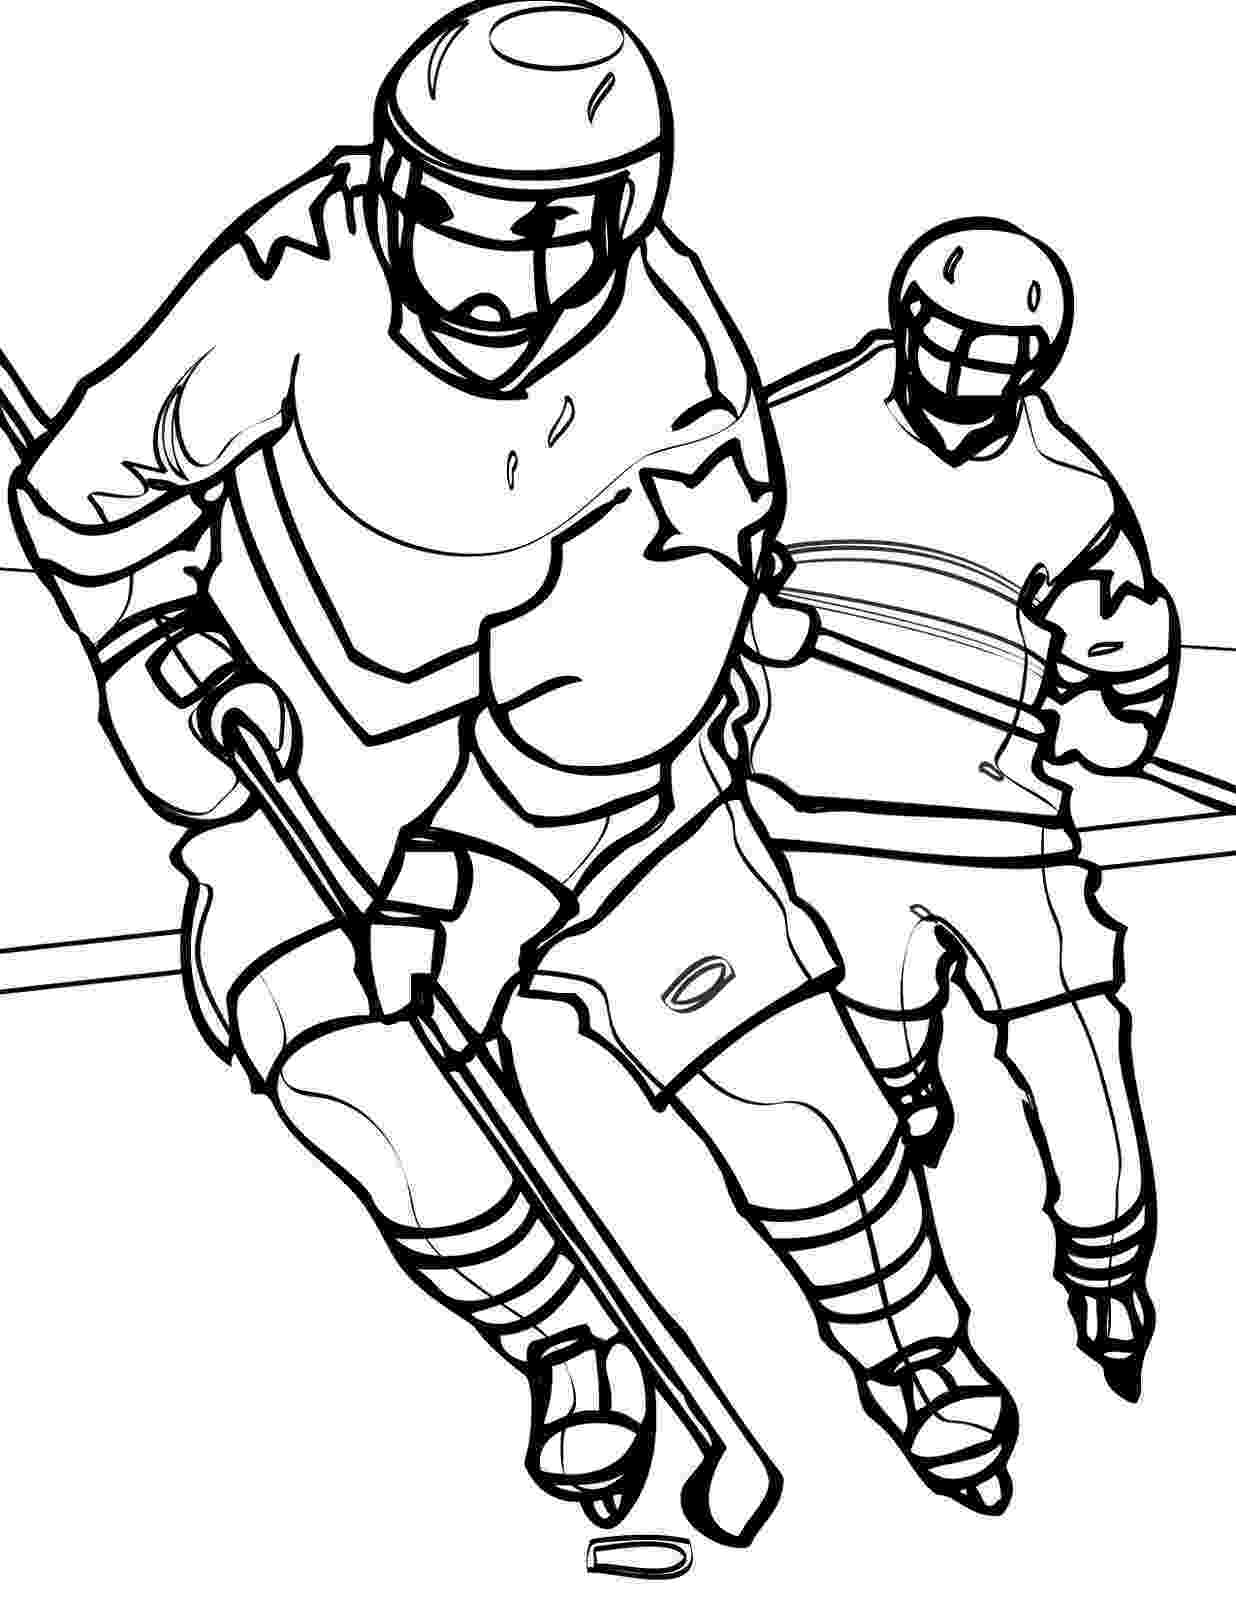 colouring pages hockey winnipeg jets goalies coloring pages coloring home pages hockey colouring